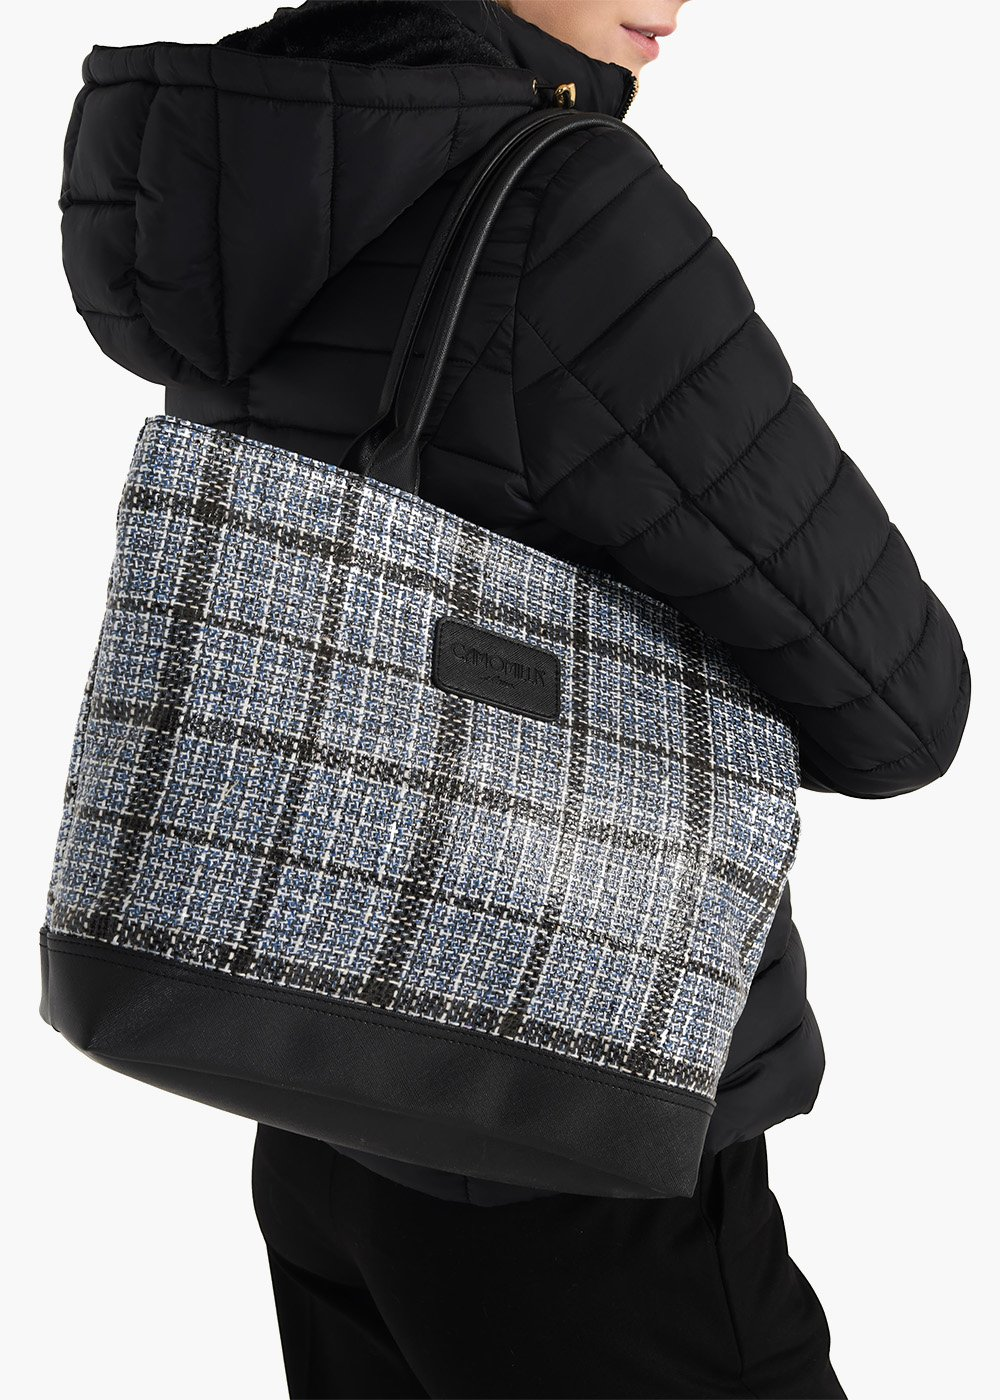 Shopping bag Trend Tartan in tessuto tartan con doppi manici - Avion / Black Fantasia - Donna